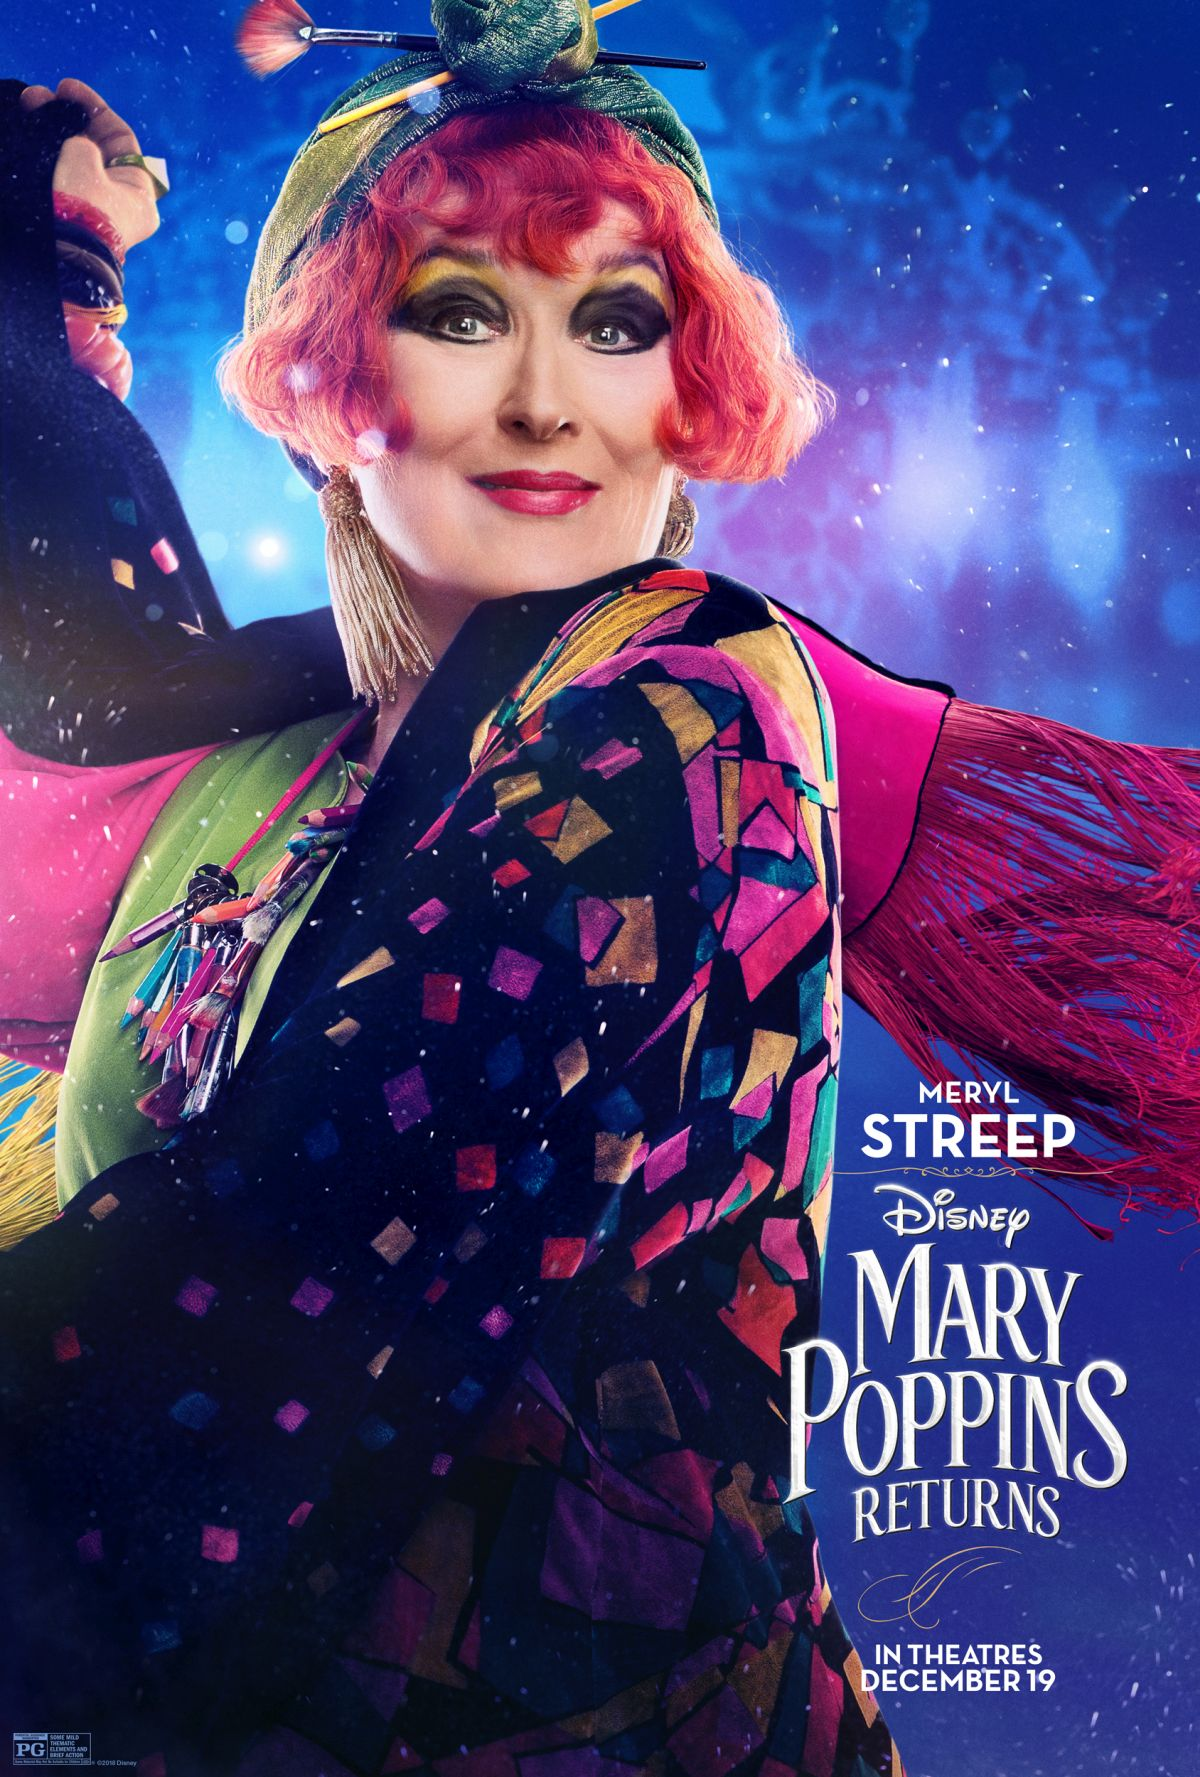 marypoppinsreturns5bedf18ed9f1b